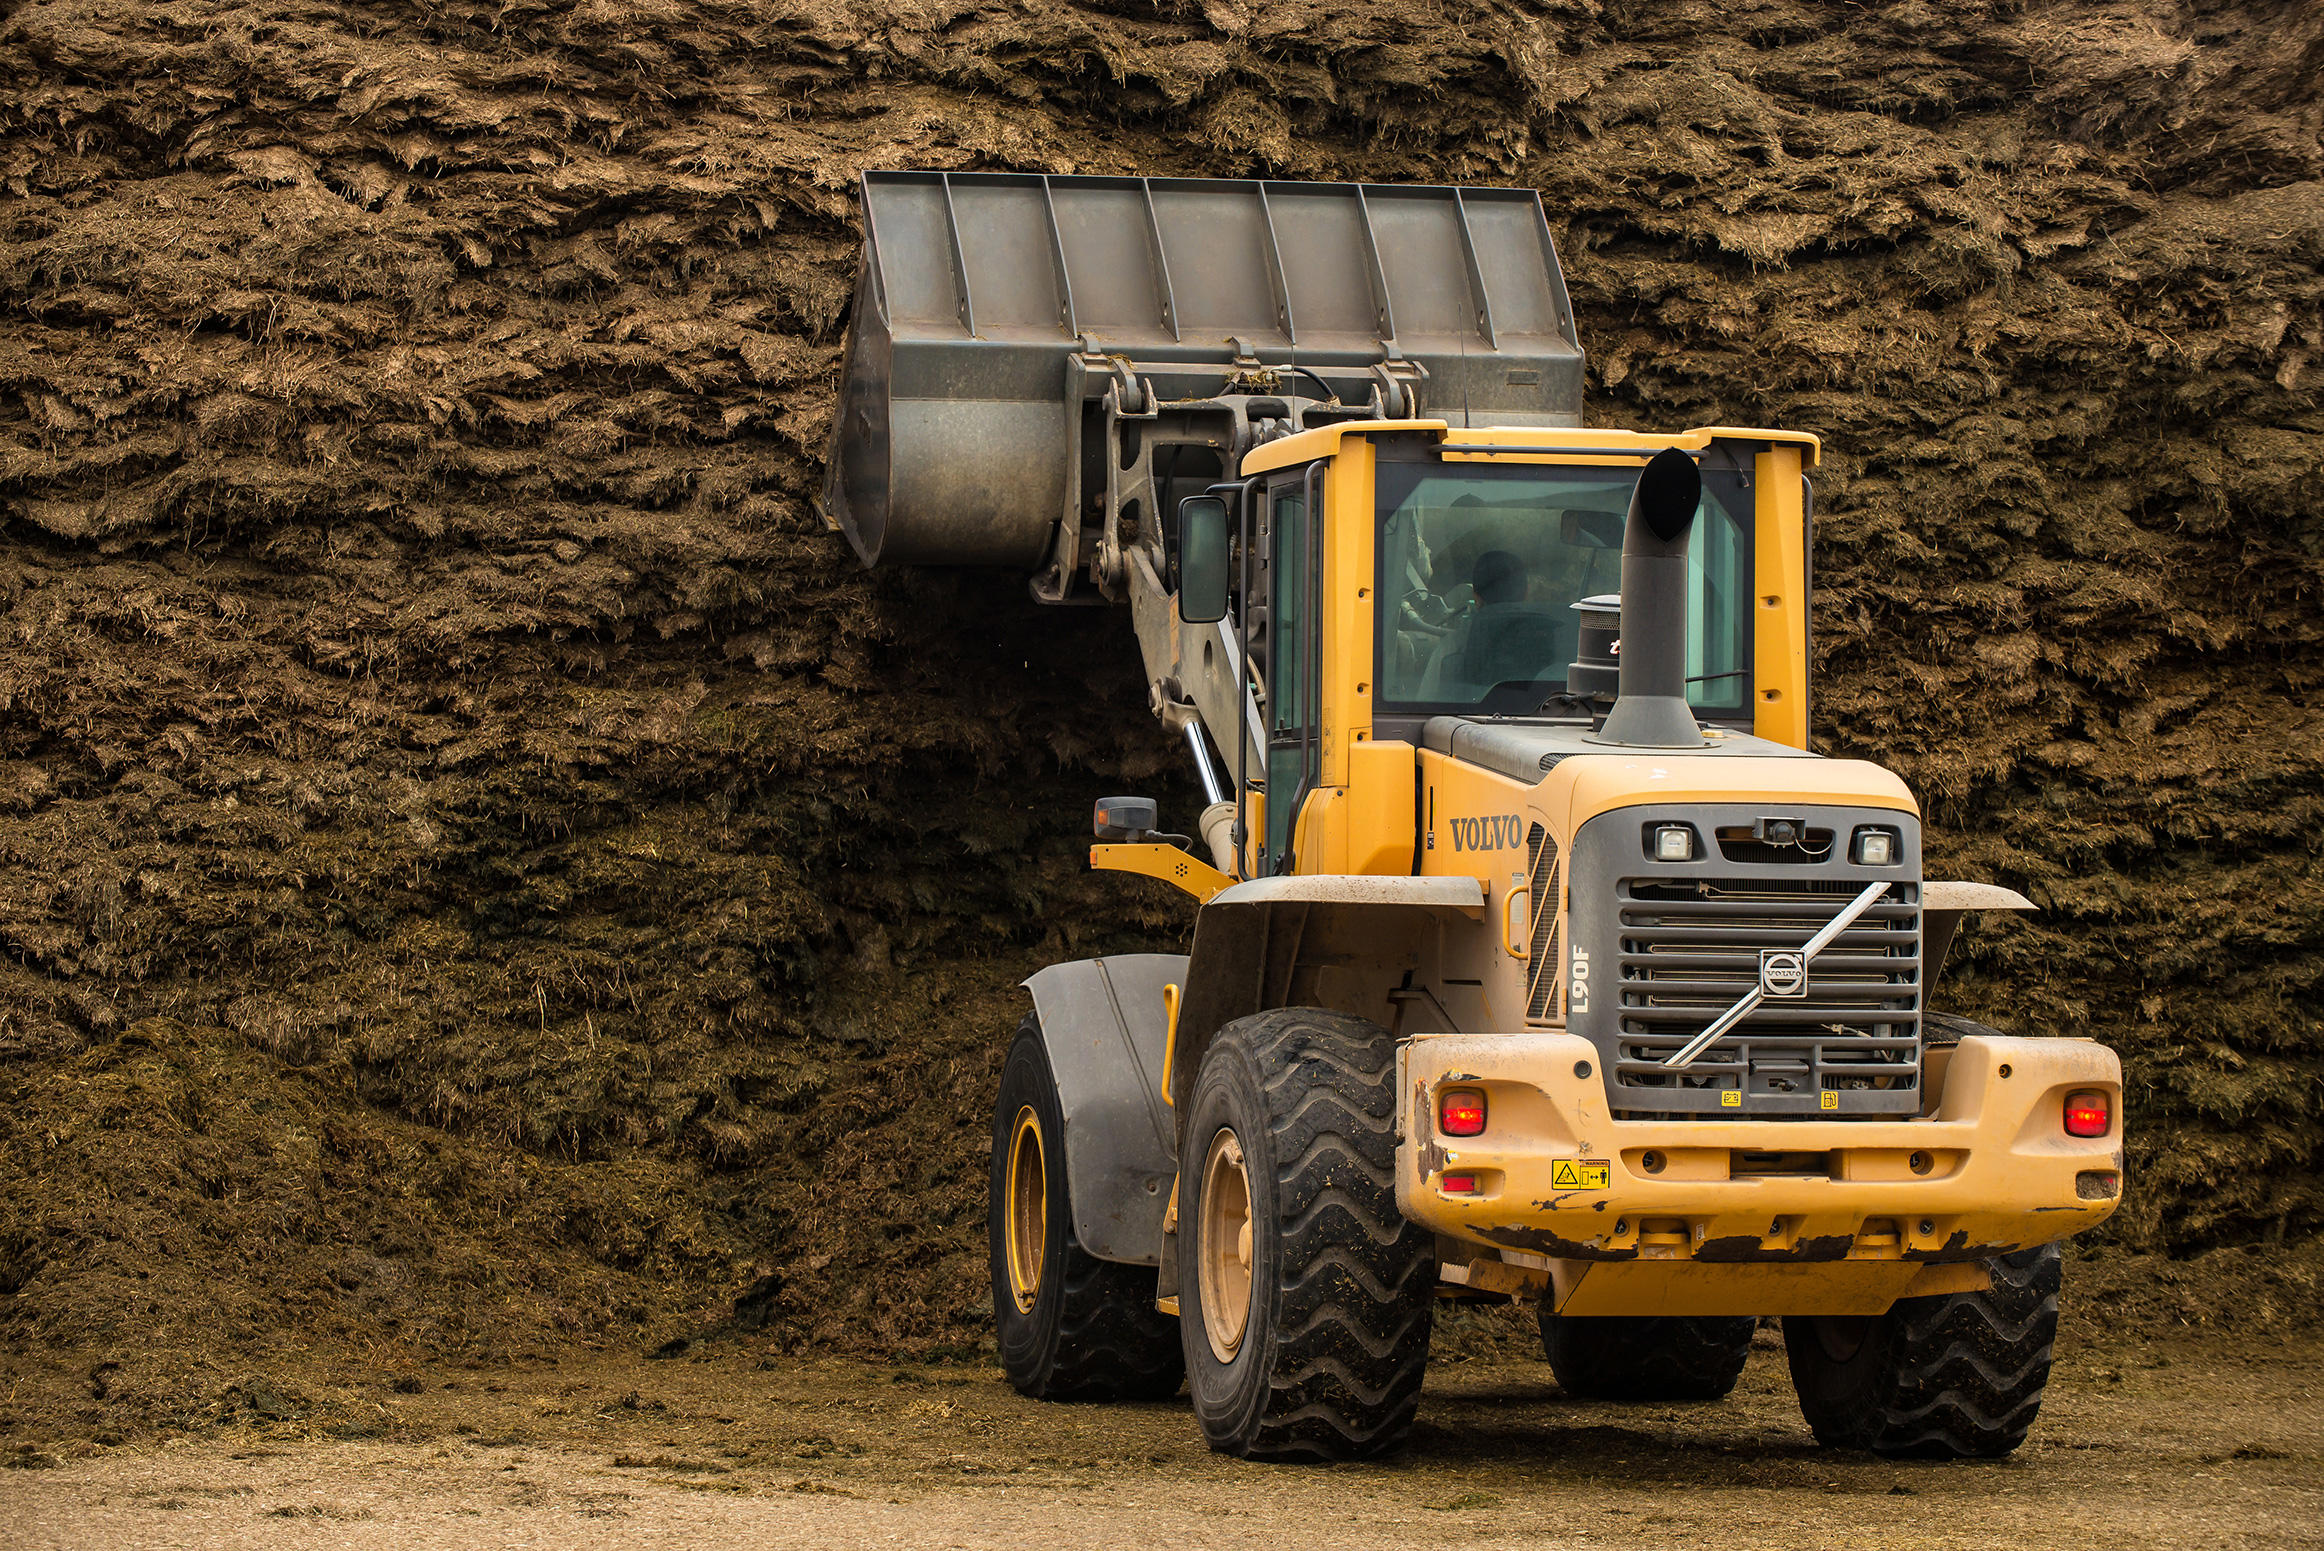 Volvo's TP-linkage, attachment bracket and genuine Volvo attachments make the flexible L90F wheel loader the perfect machine for all of Still Meadow's applications